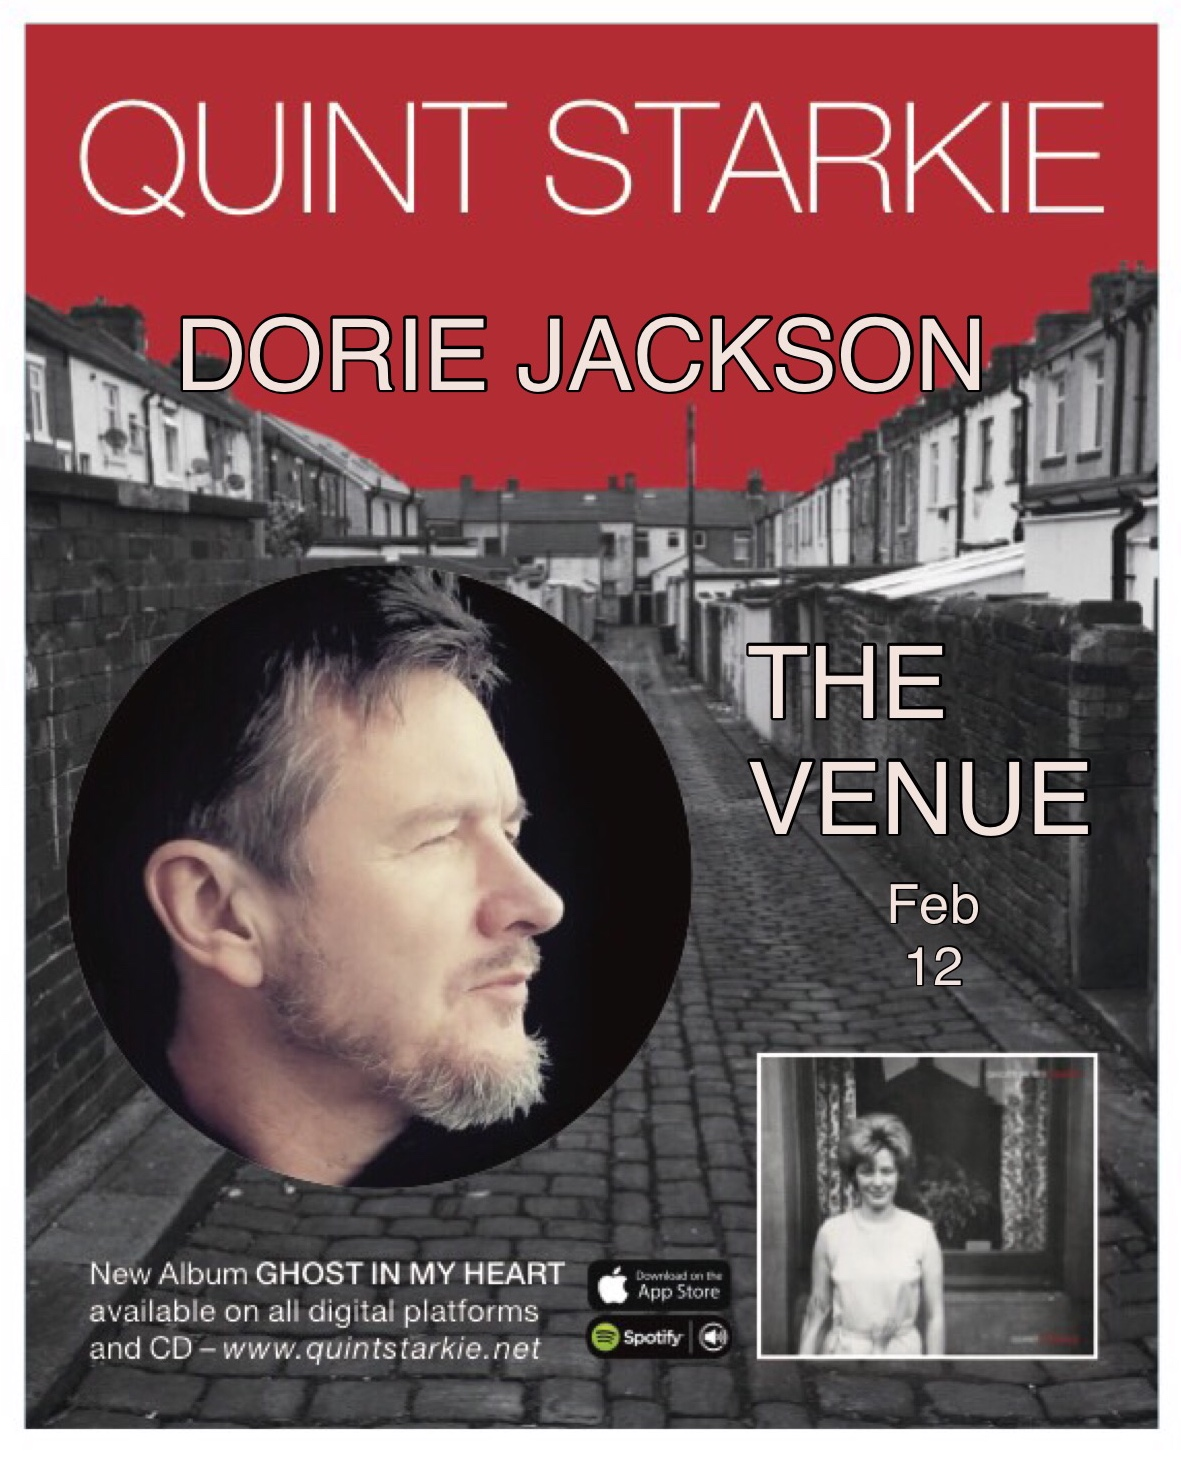 LIVE at THE VENUE in LYMM Cheshire UK: Feb 12